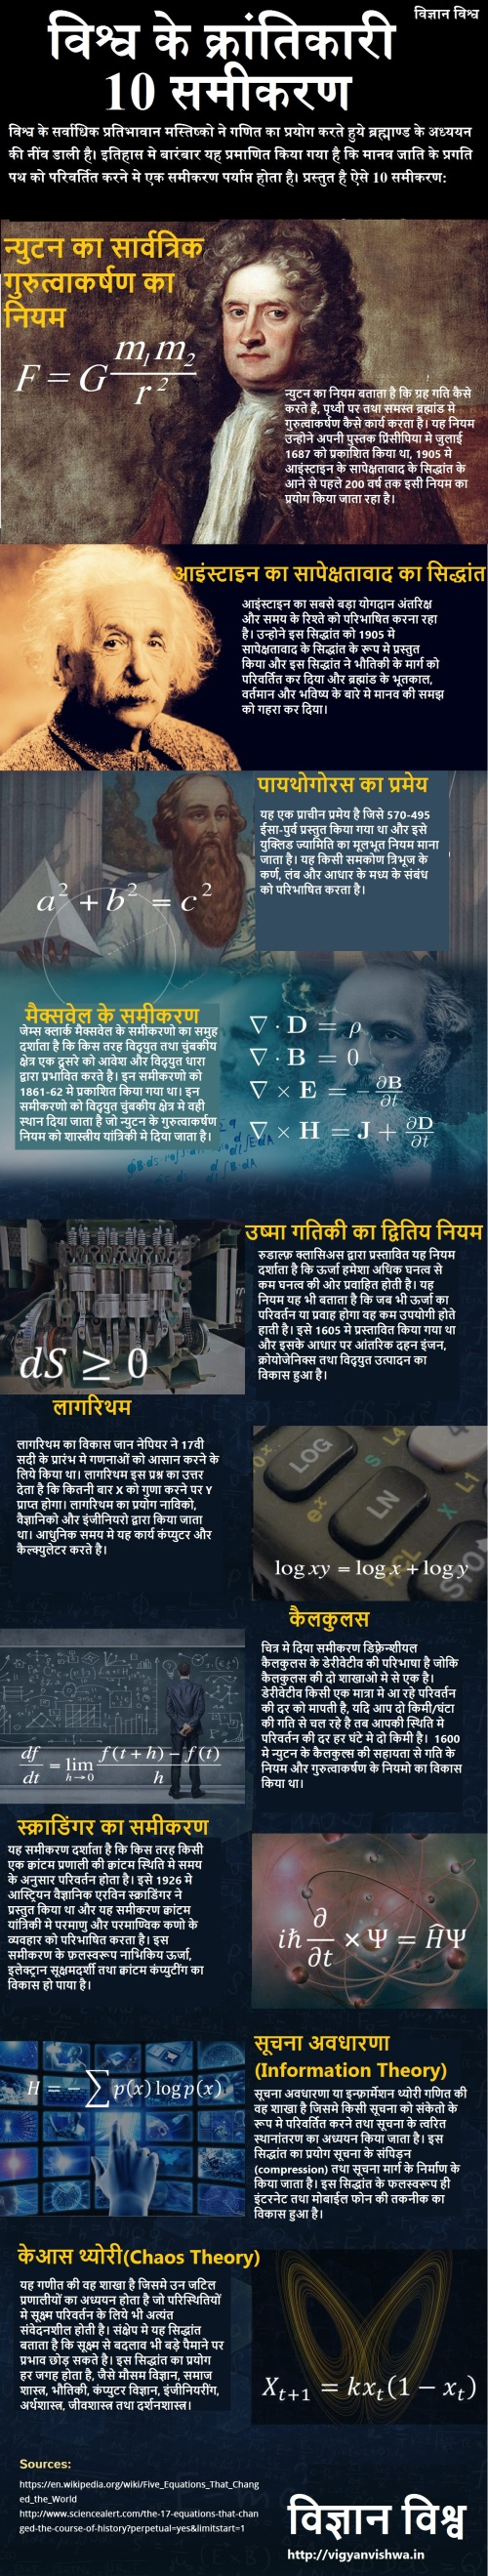 Ten-Equations-That-Changed-The-World_v3-1